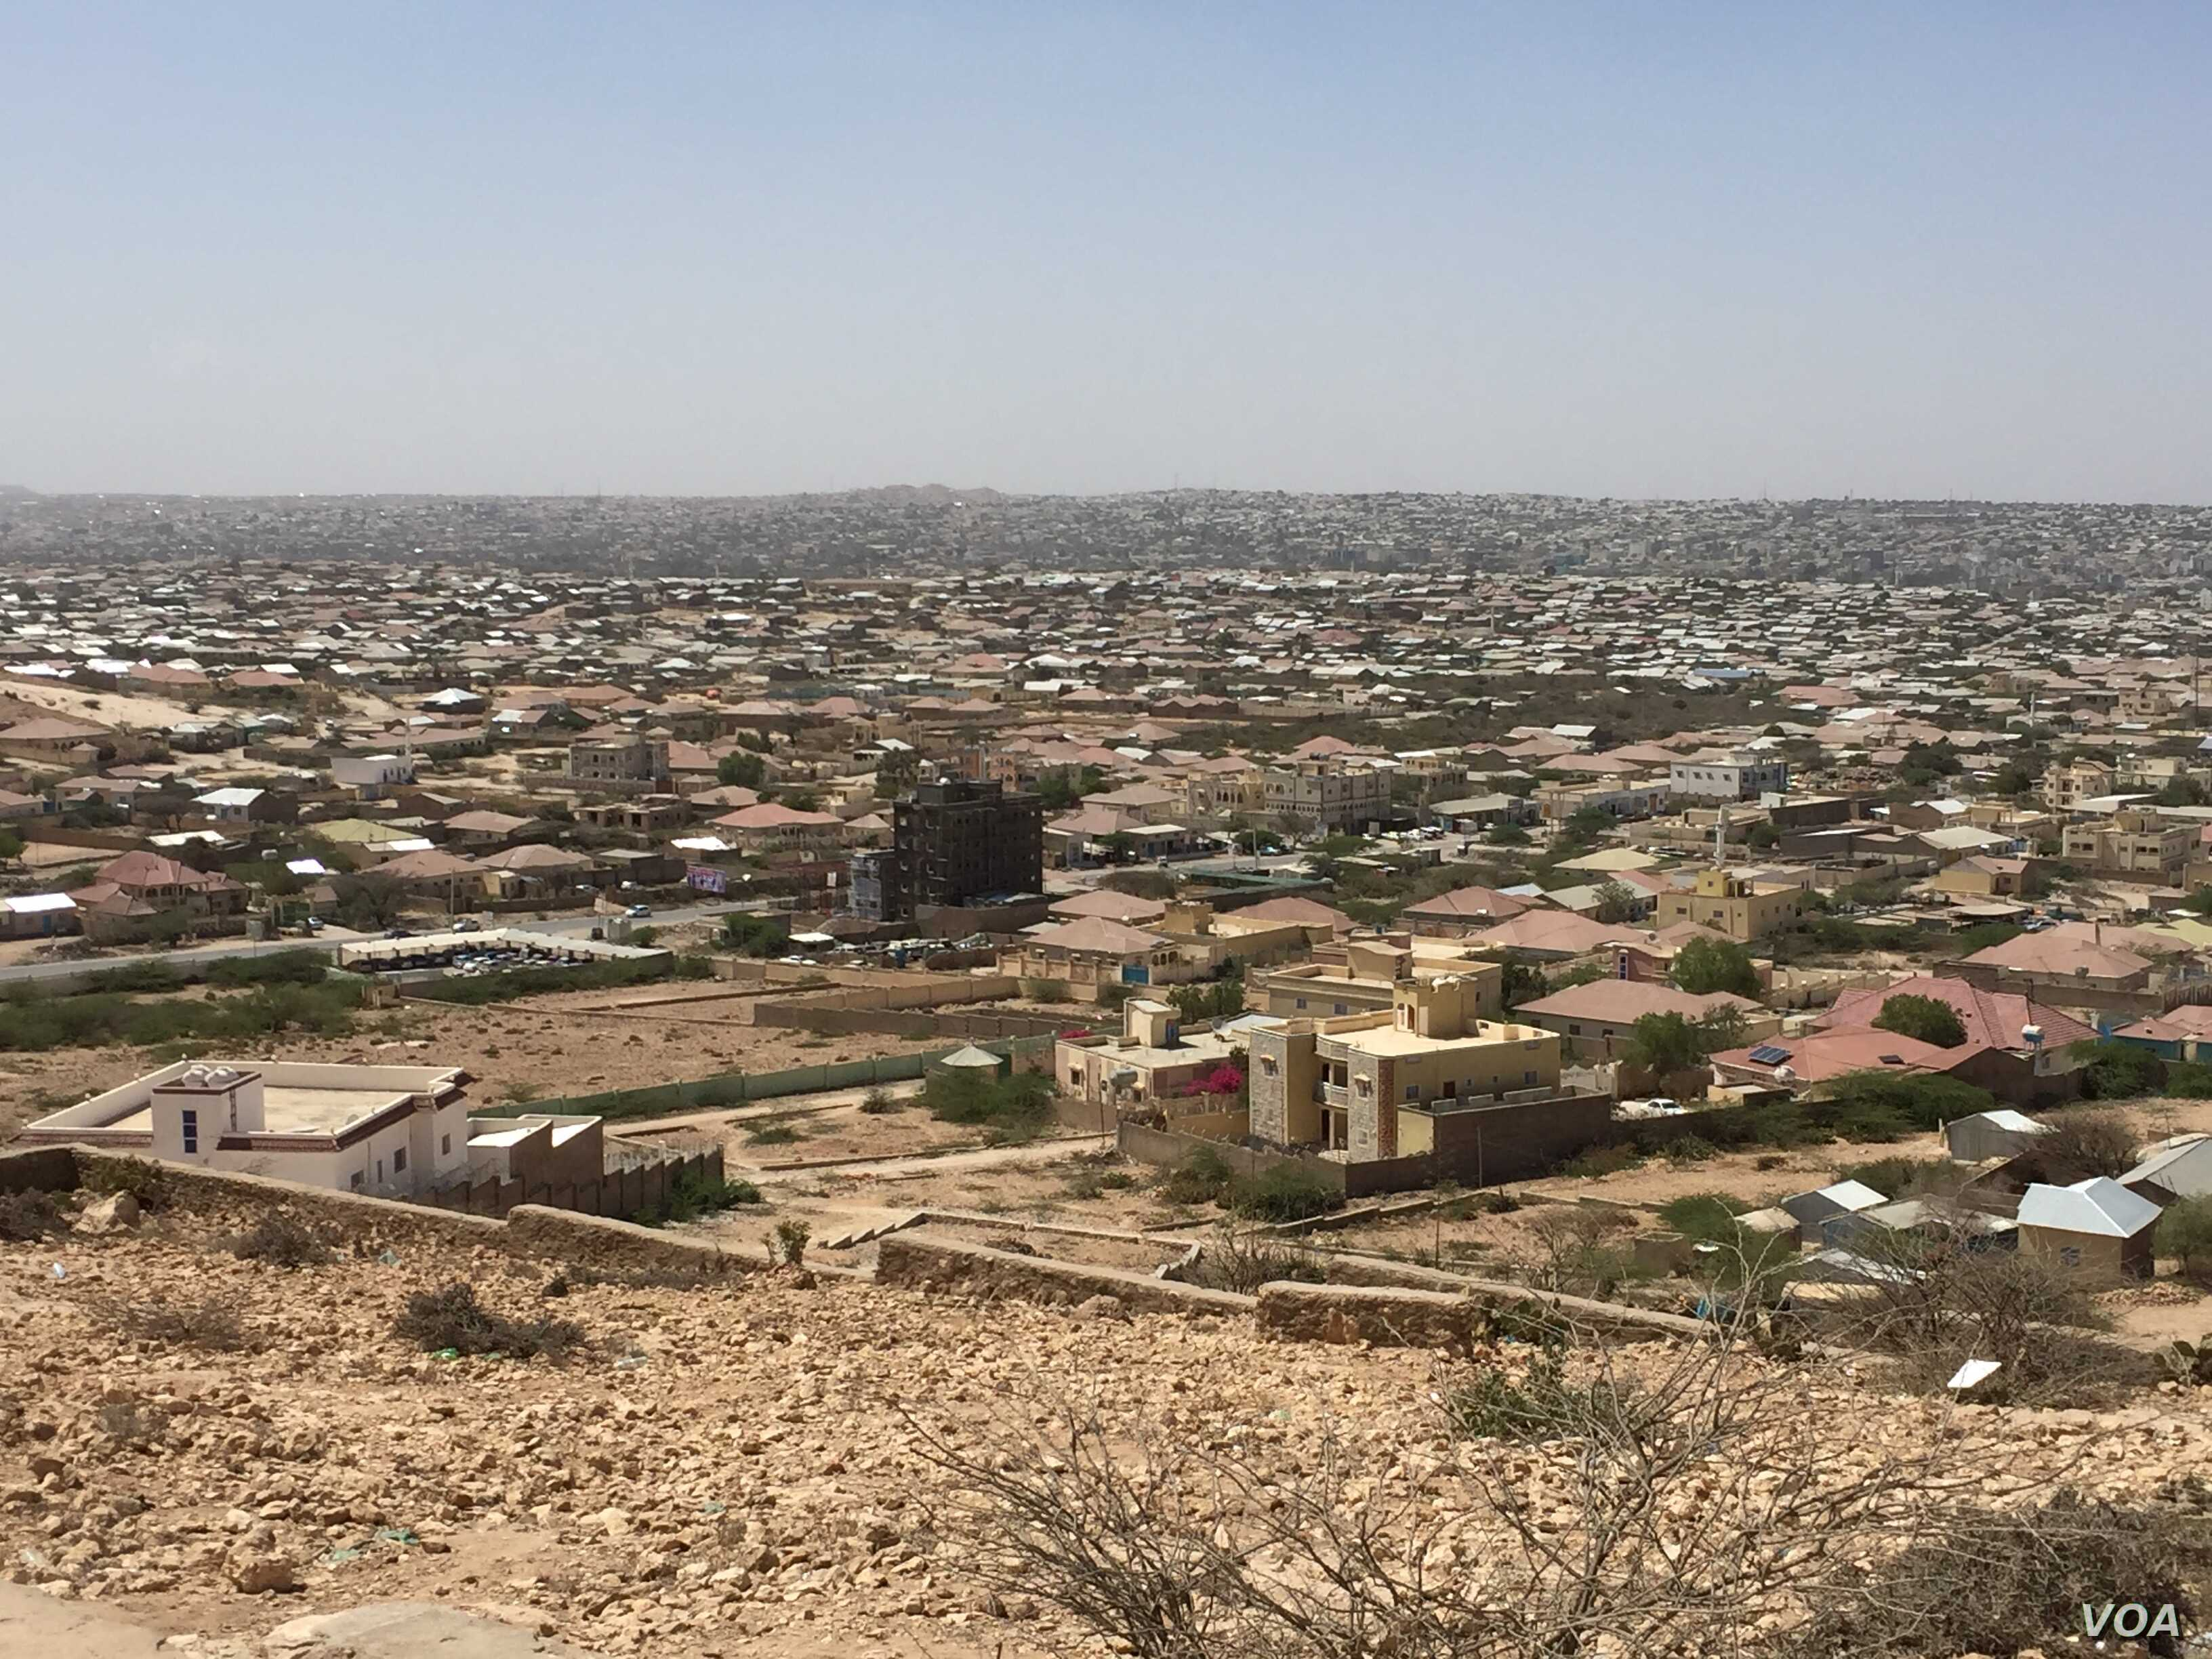 Landscape view of Hargeisa, Somaliland, March 29, 2016.